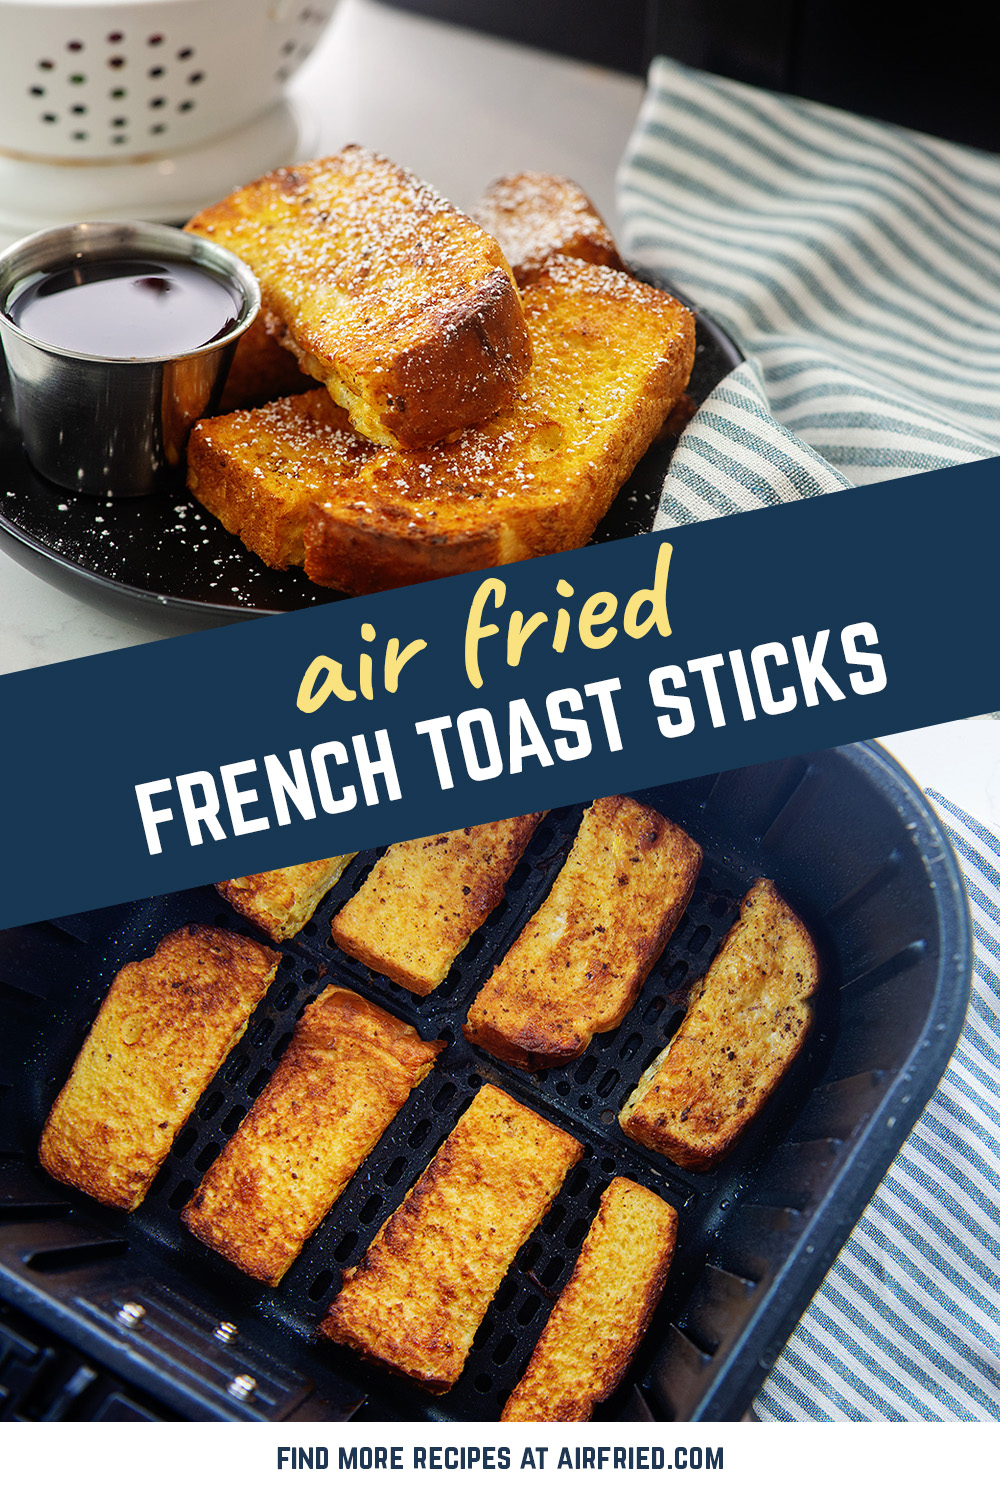 Try out your air fryer with this French toast stick recipe!